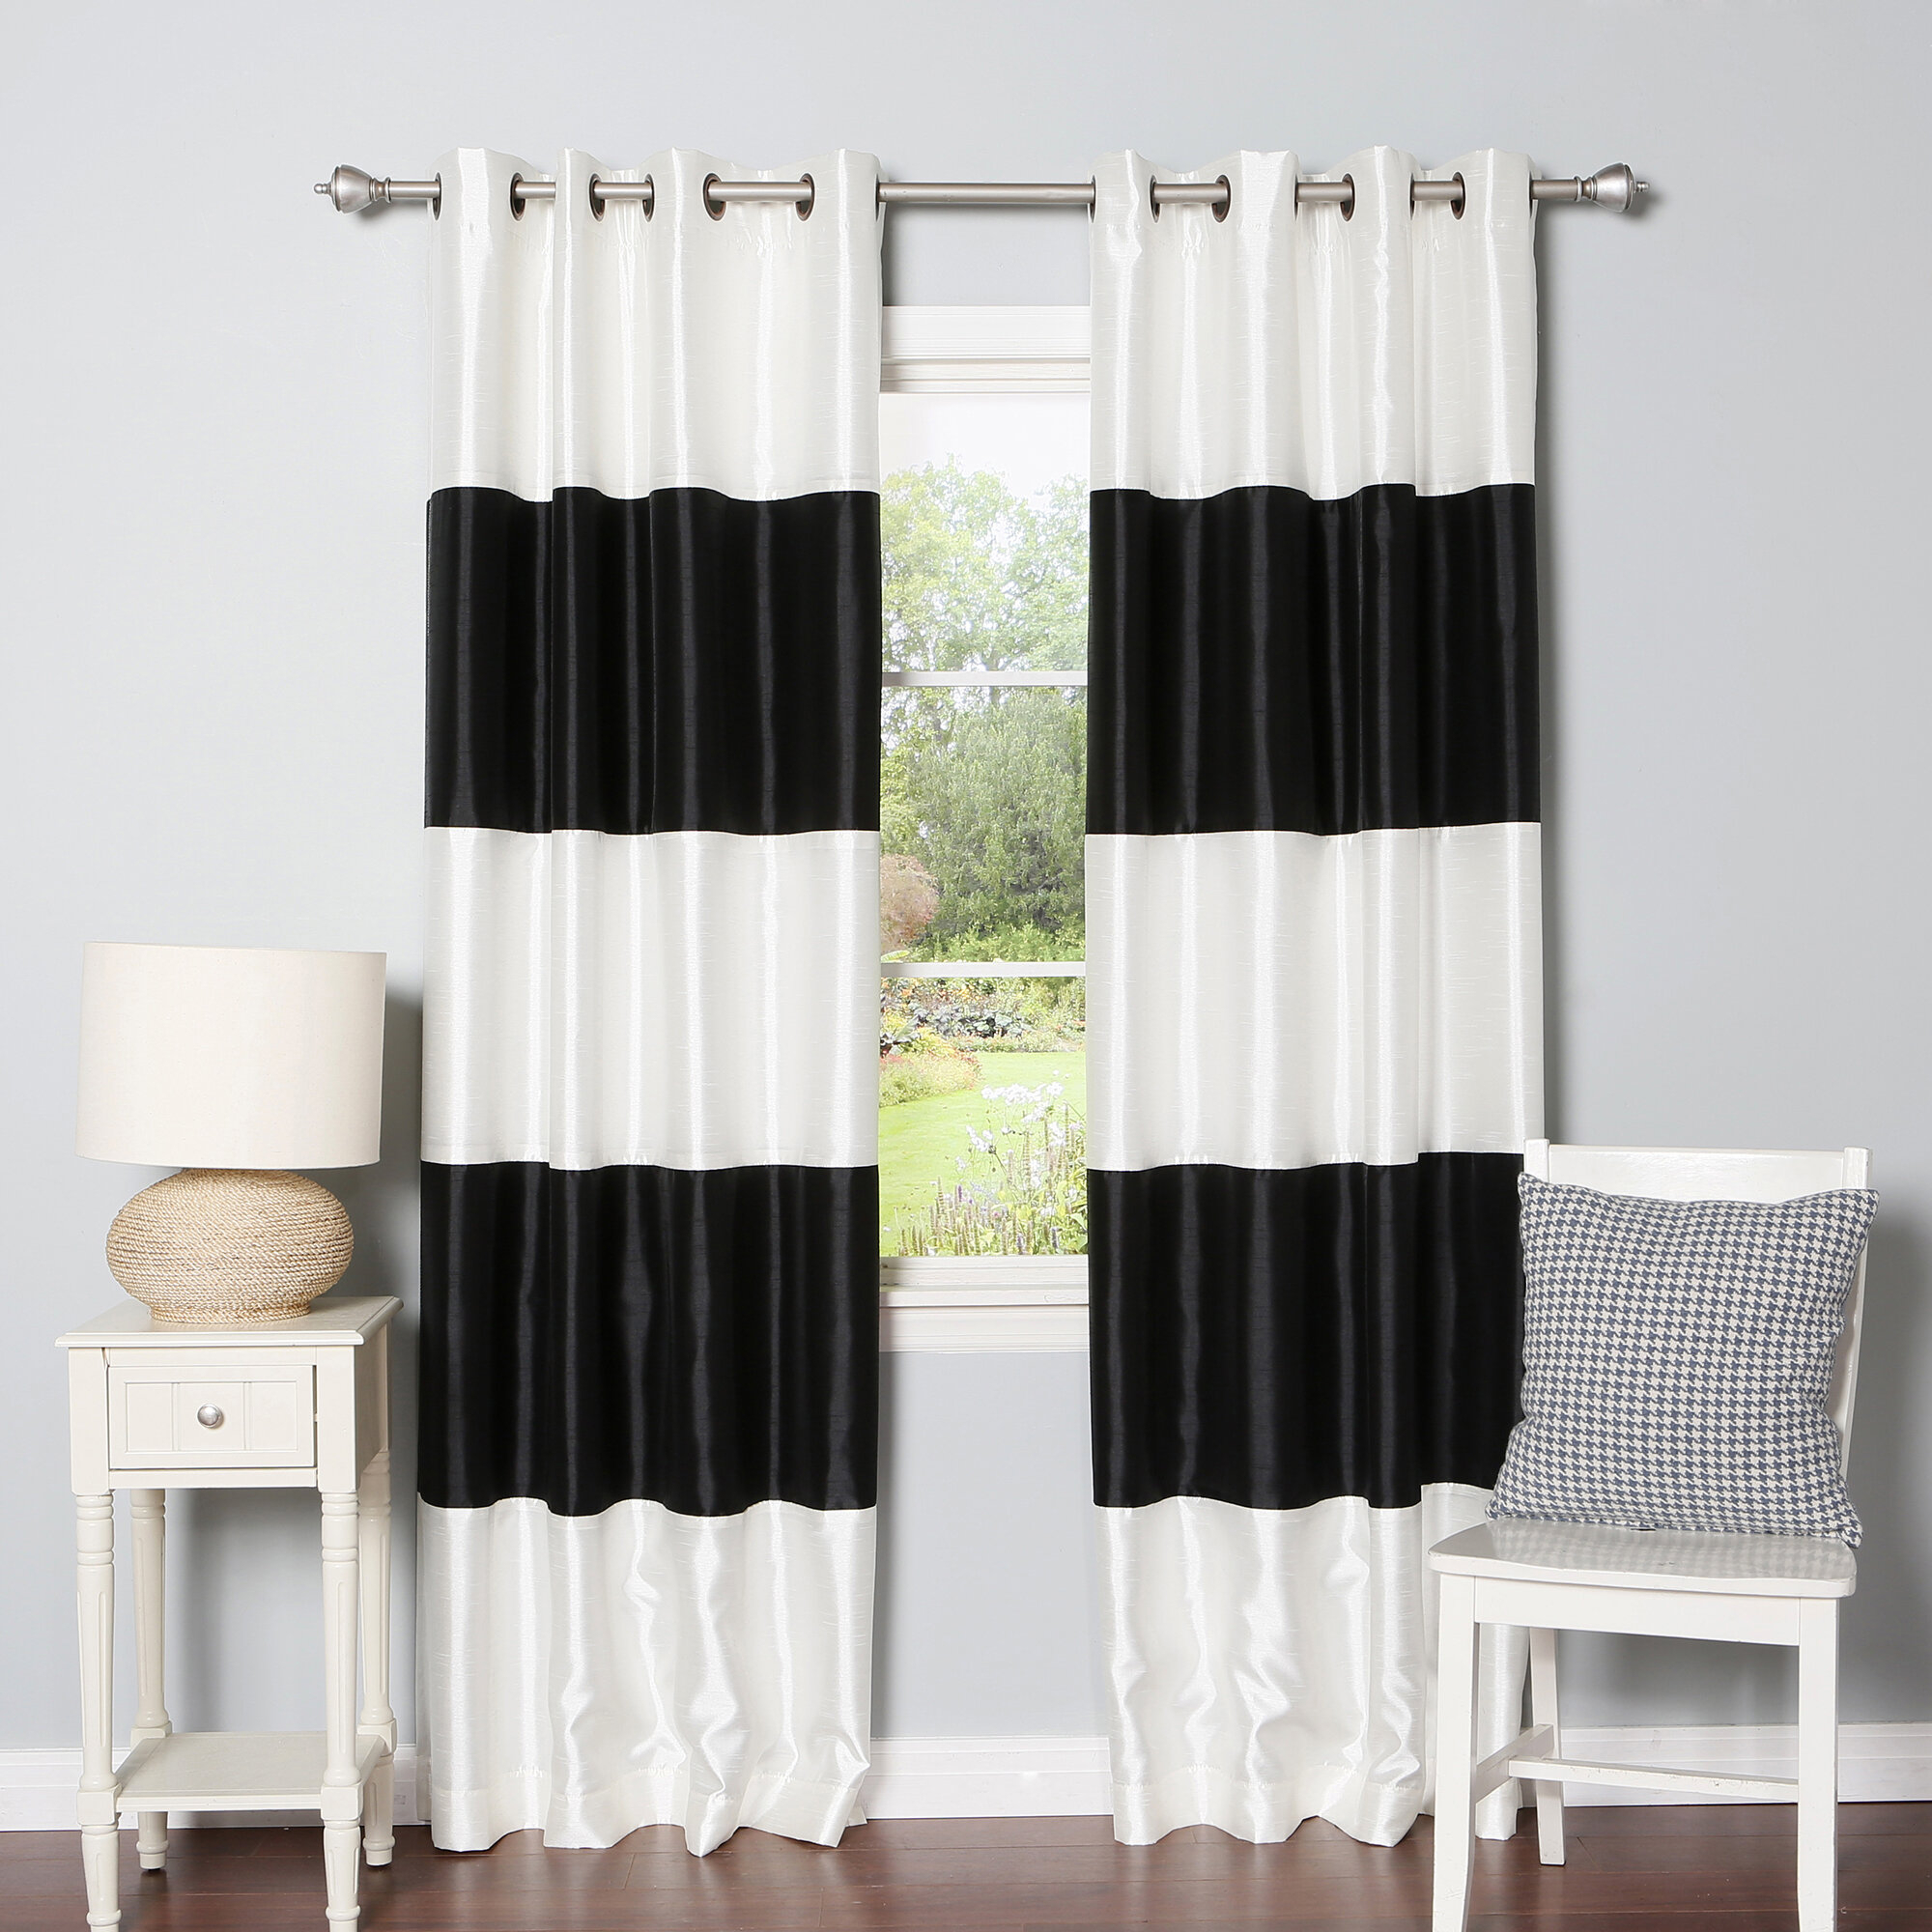 Kulikowski Striped Blackout Thermal Grommet Panel Pair Throughout Thermal Insulated Blackout Curtain Panel Pairs (Gallery 25 of 30)